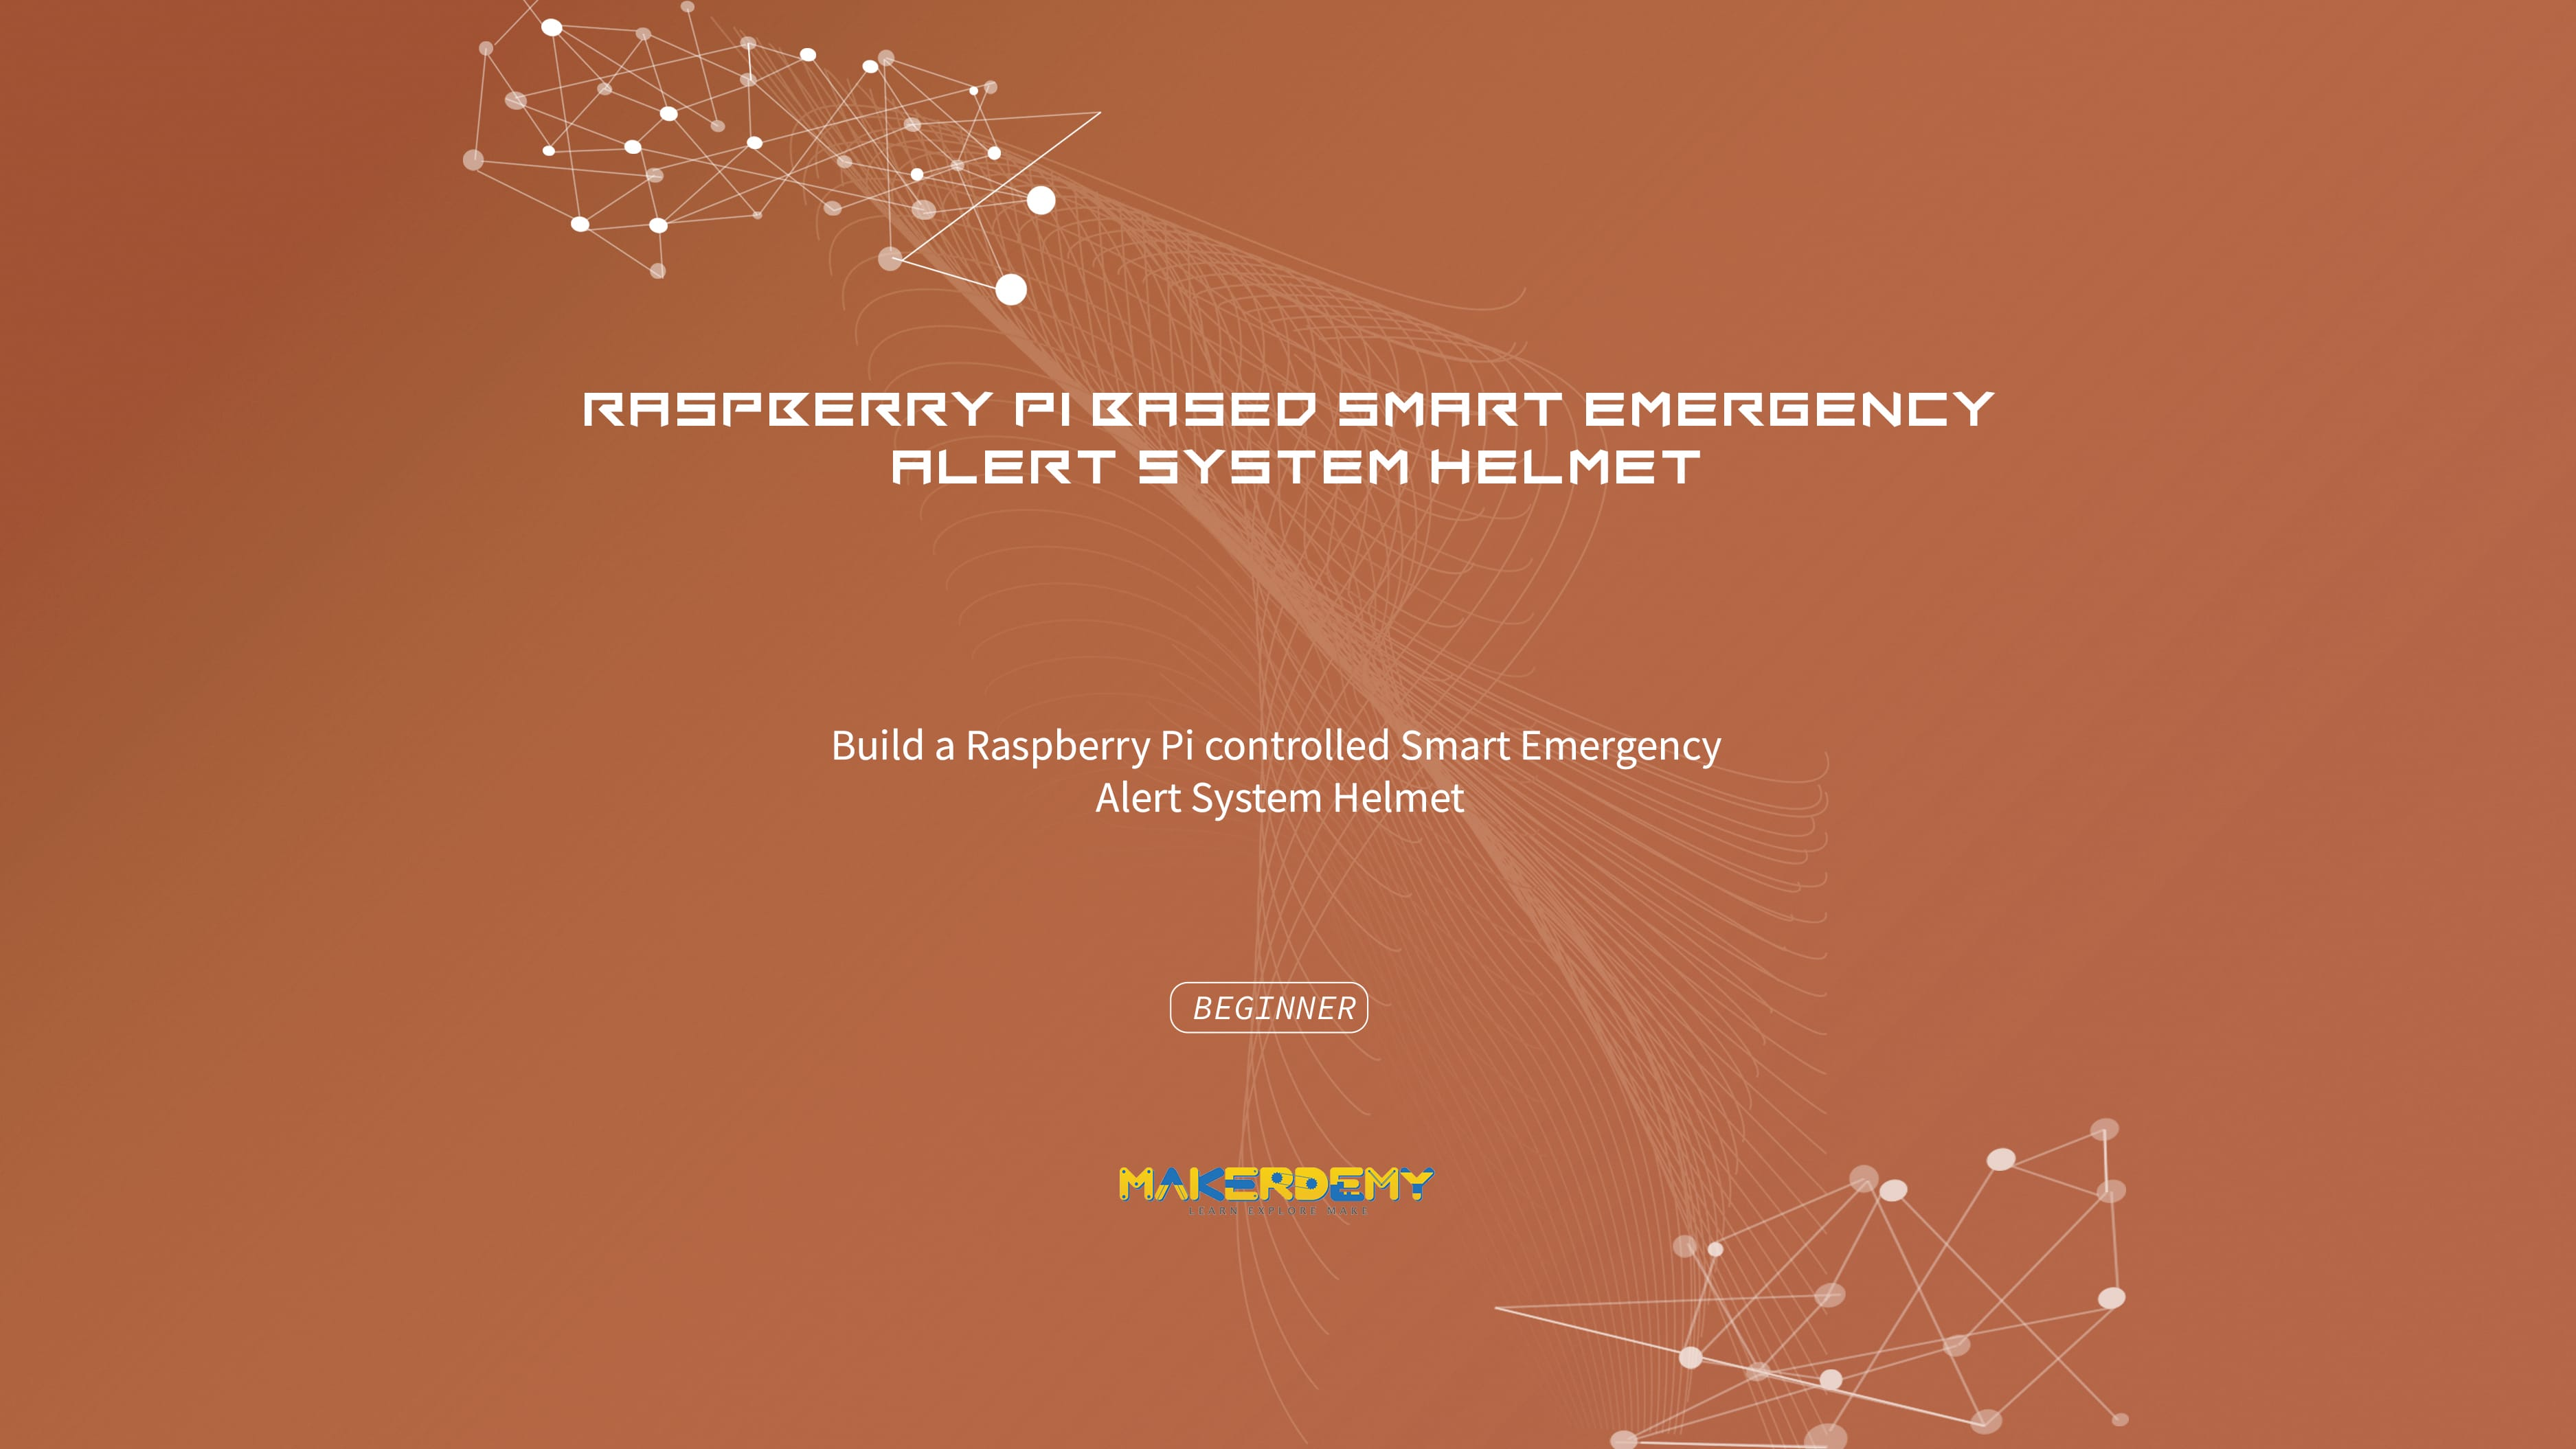 Raspberry Pi based Smart Emergency Alert System Helmet